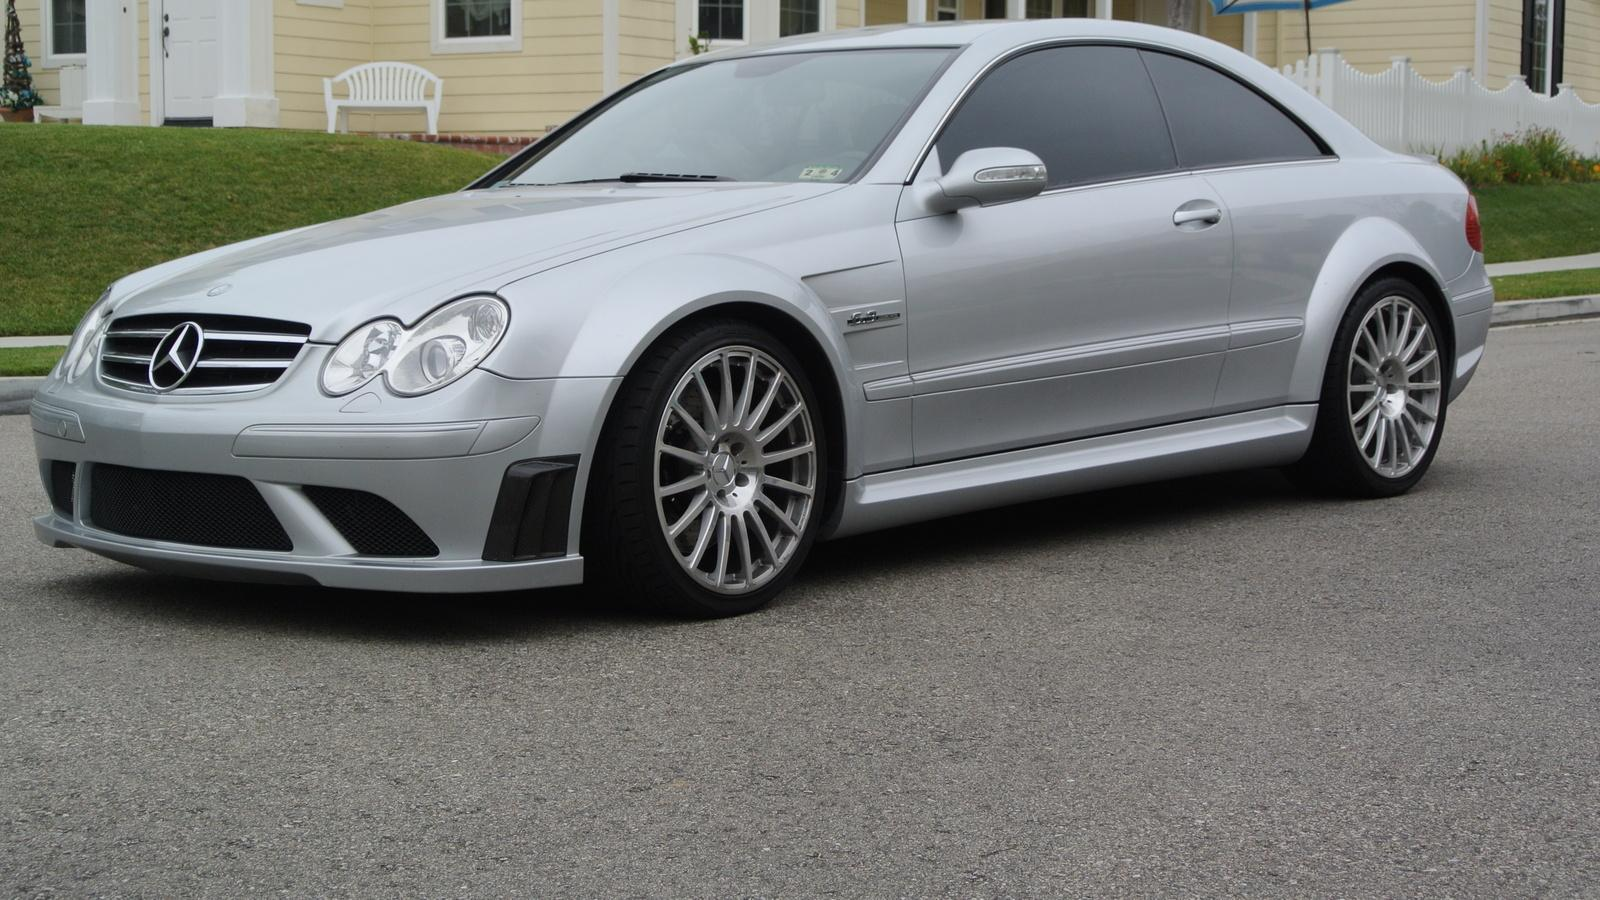 2008 mercedes benz clk class information and photos. Black Bedroom Furniture Sets. Home Design Ideas